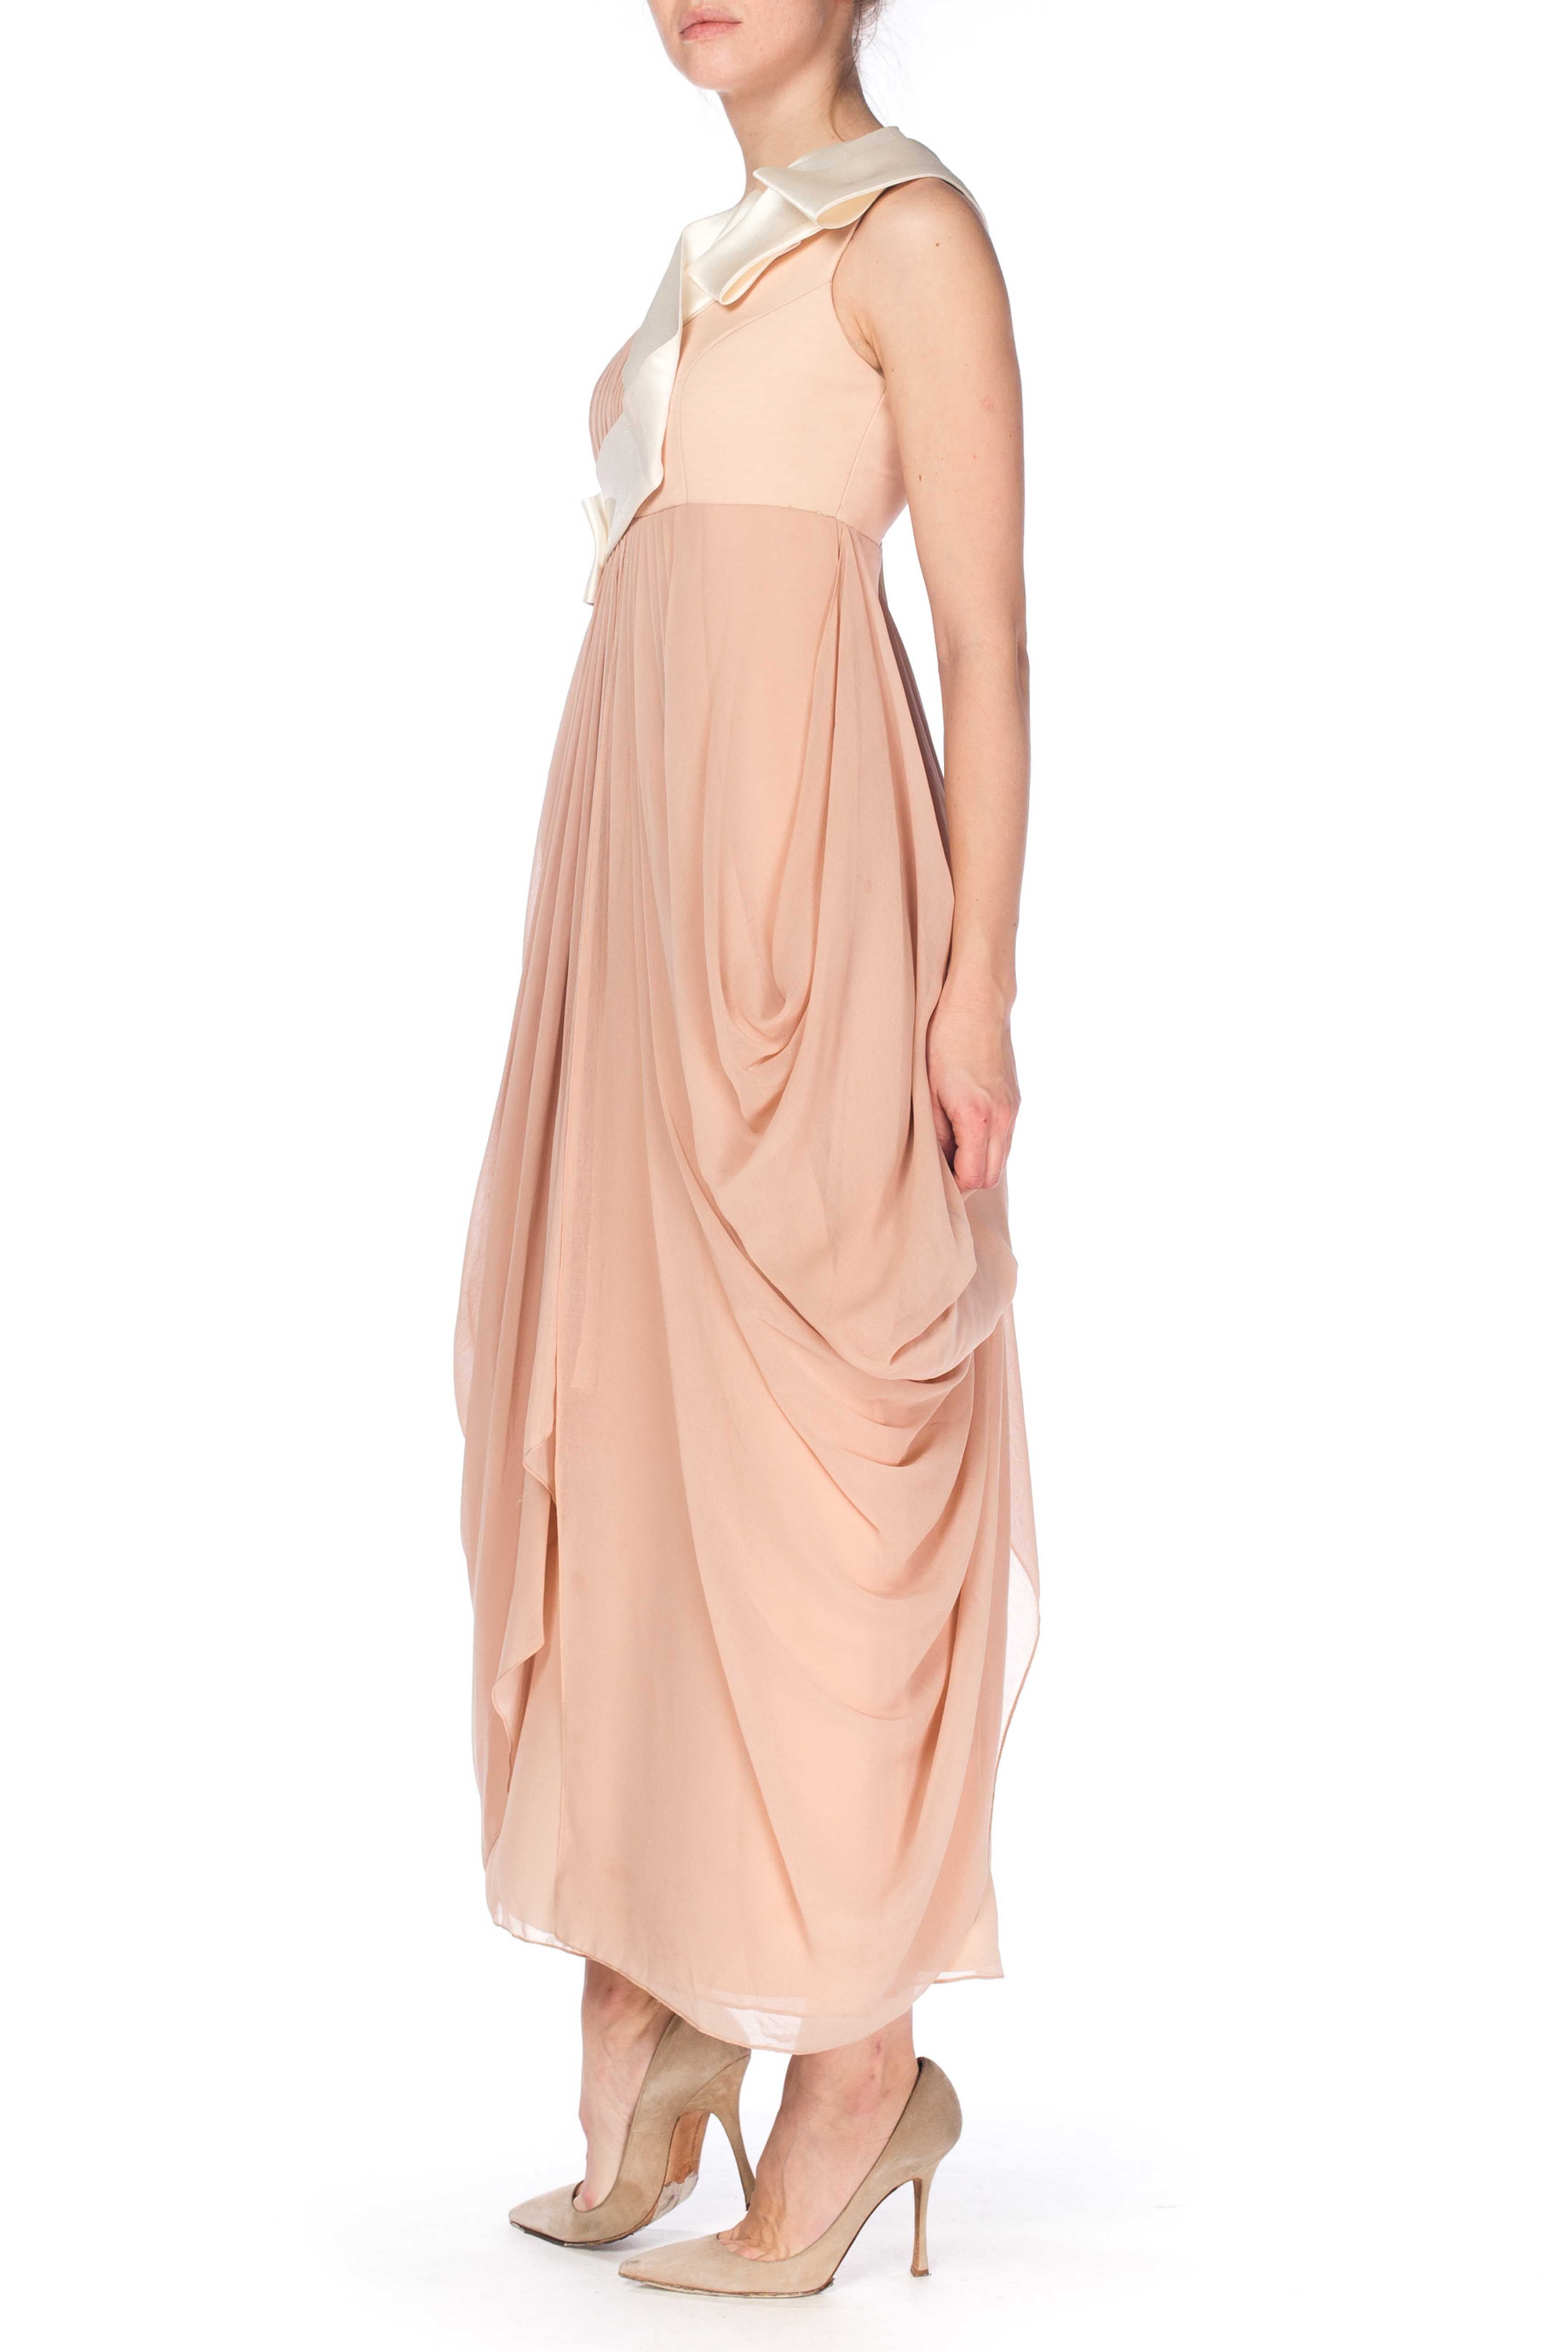 2000S JOHN GALLIANO Style Blush Pink Silk Chiffon Asymmetrically Draped One Shoulder Oragami Gown